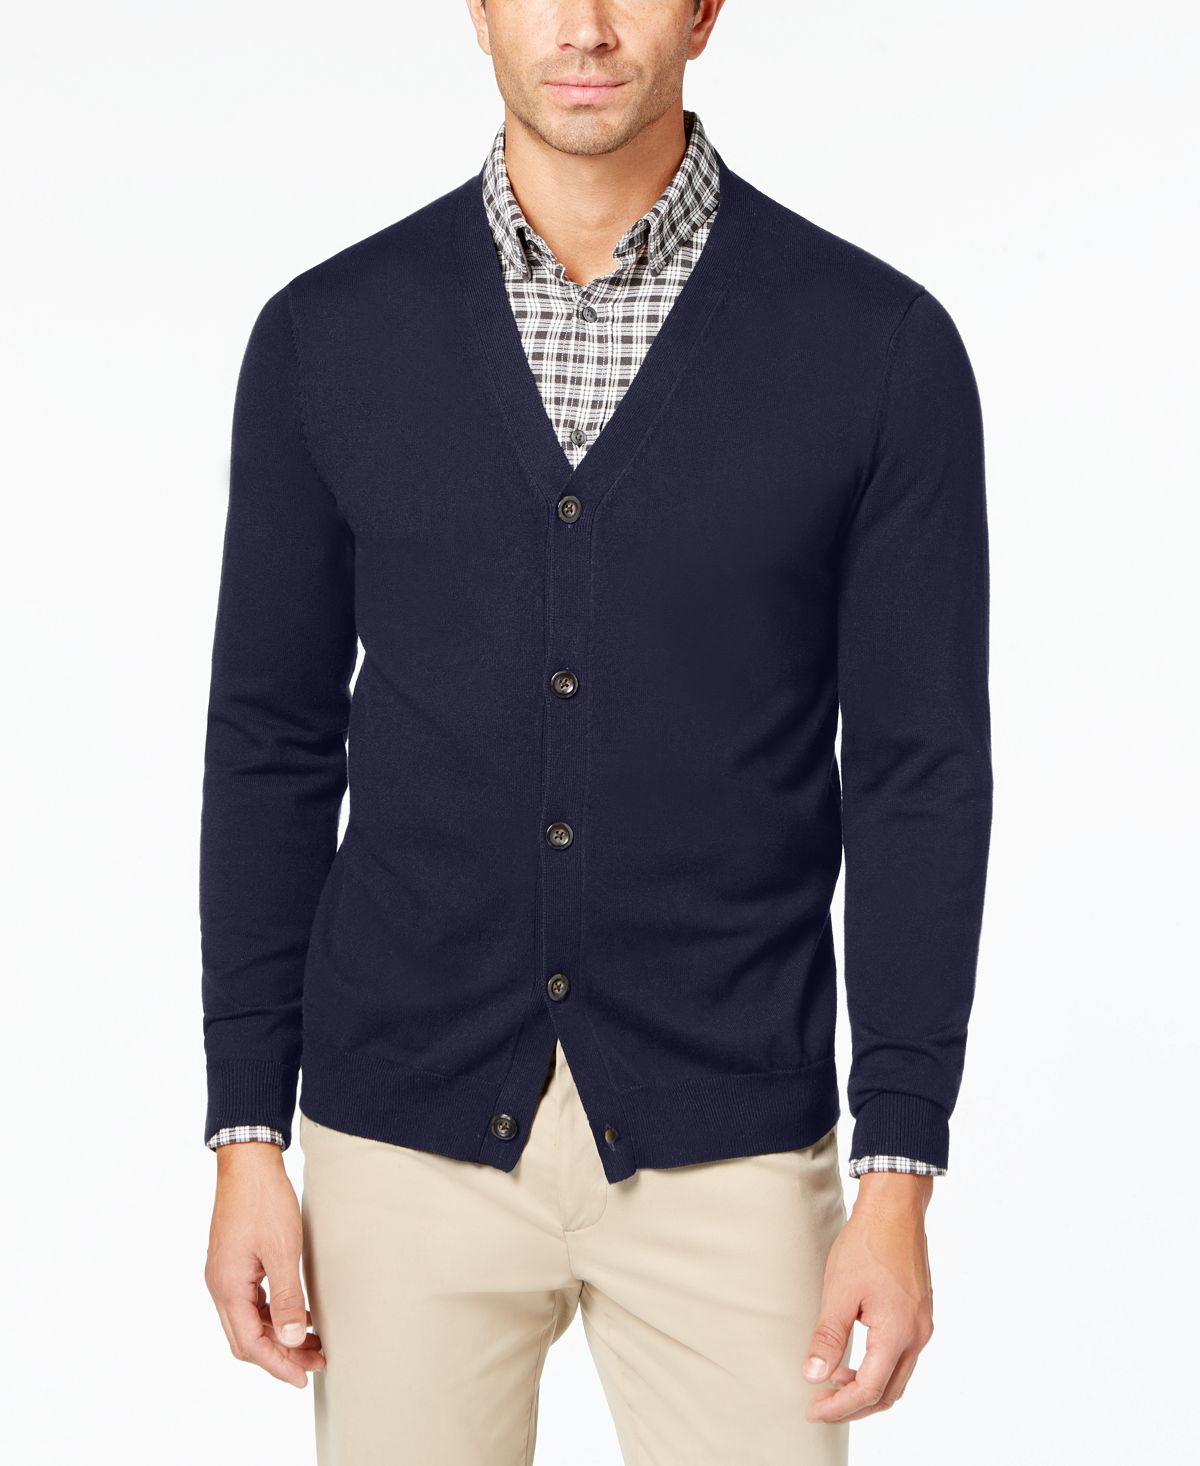 Club Room Knit V-neck Cardigan Navy Blue